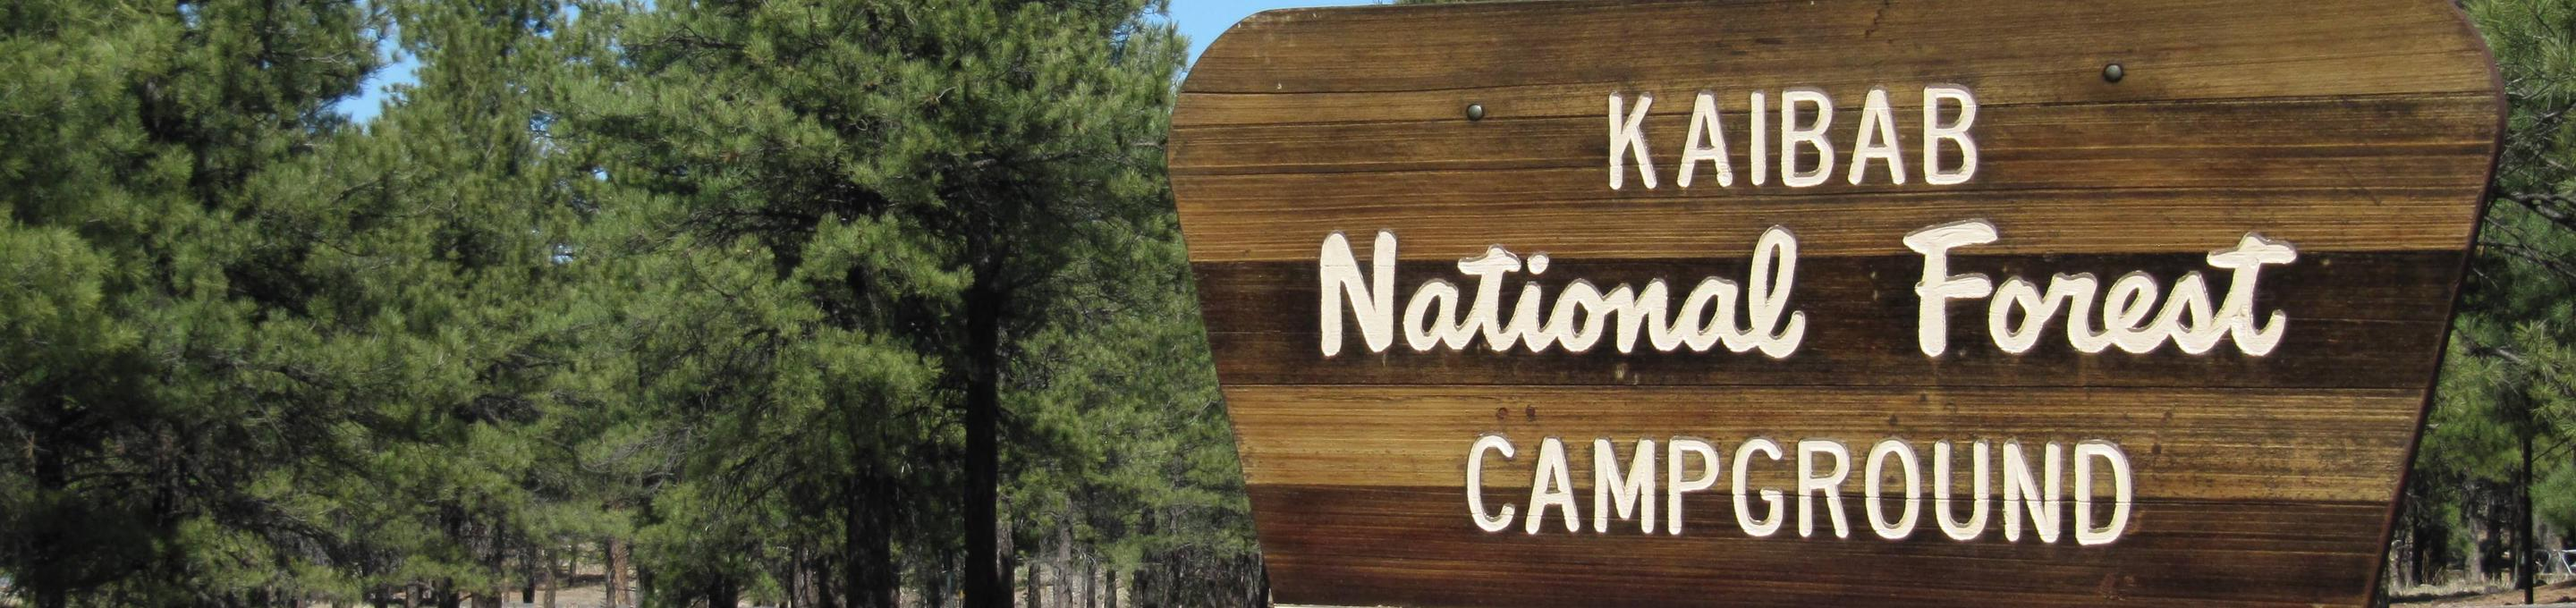 Welcome to Kaibab LakeEntrance sign to campground